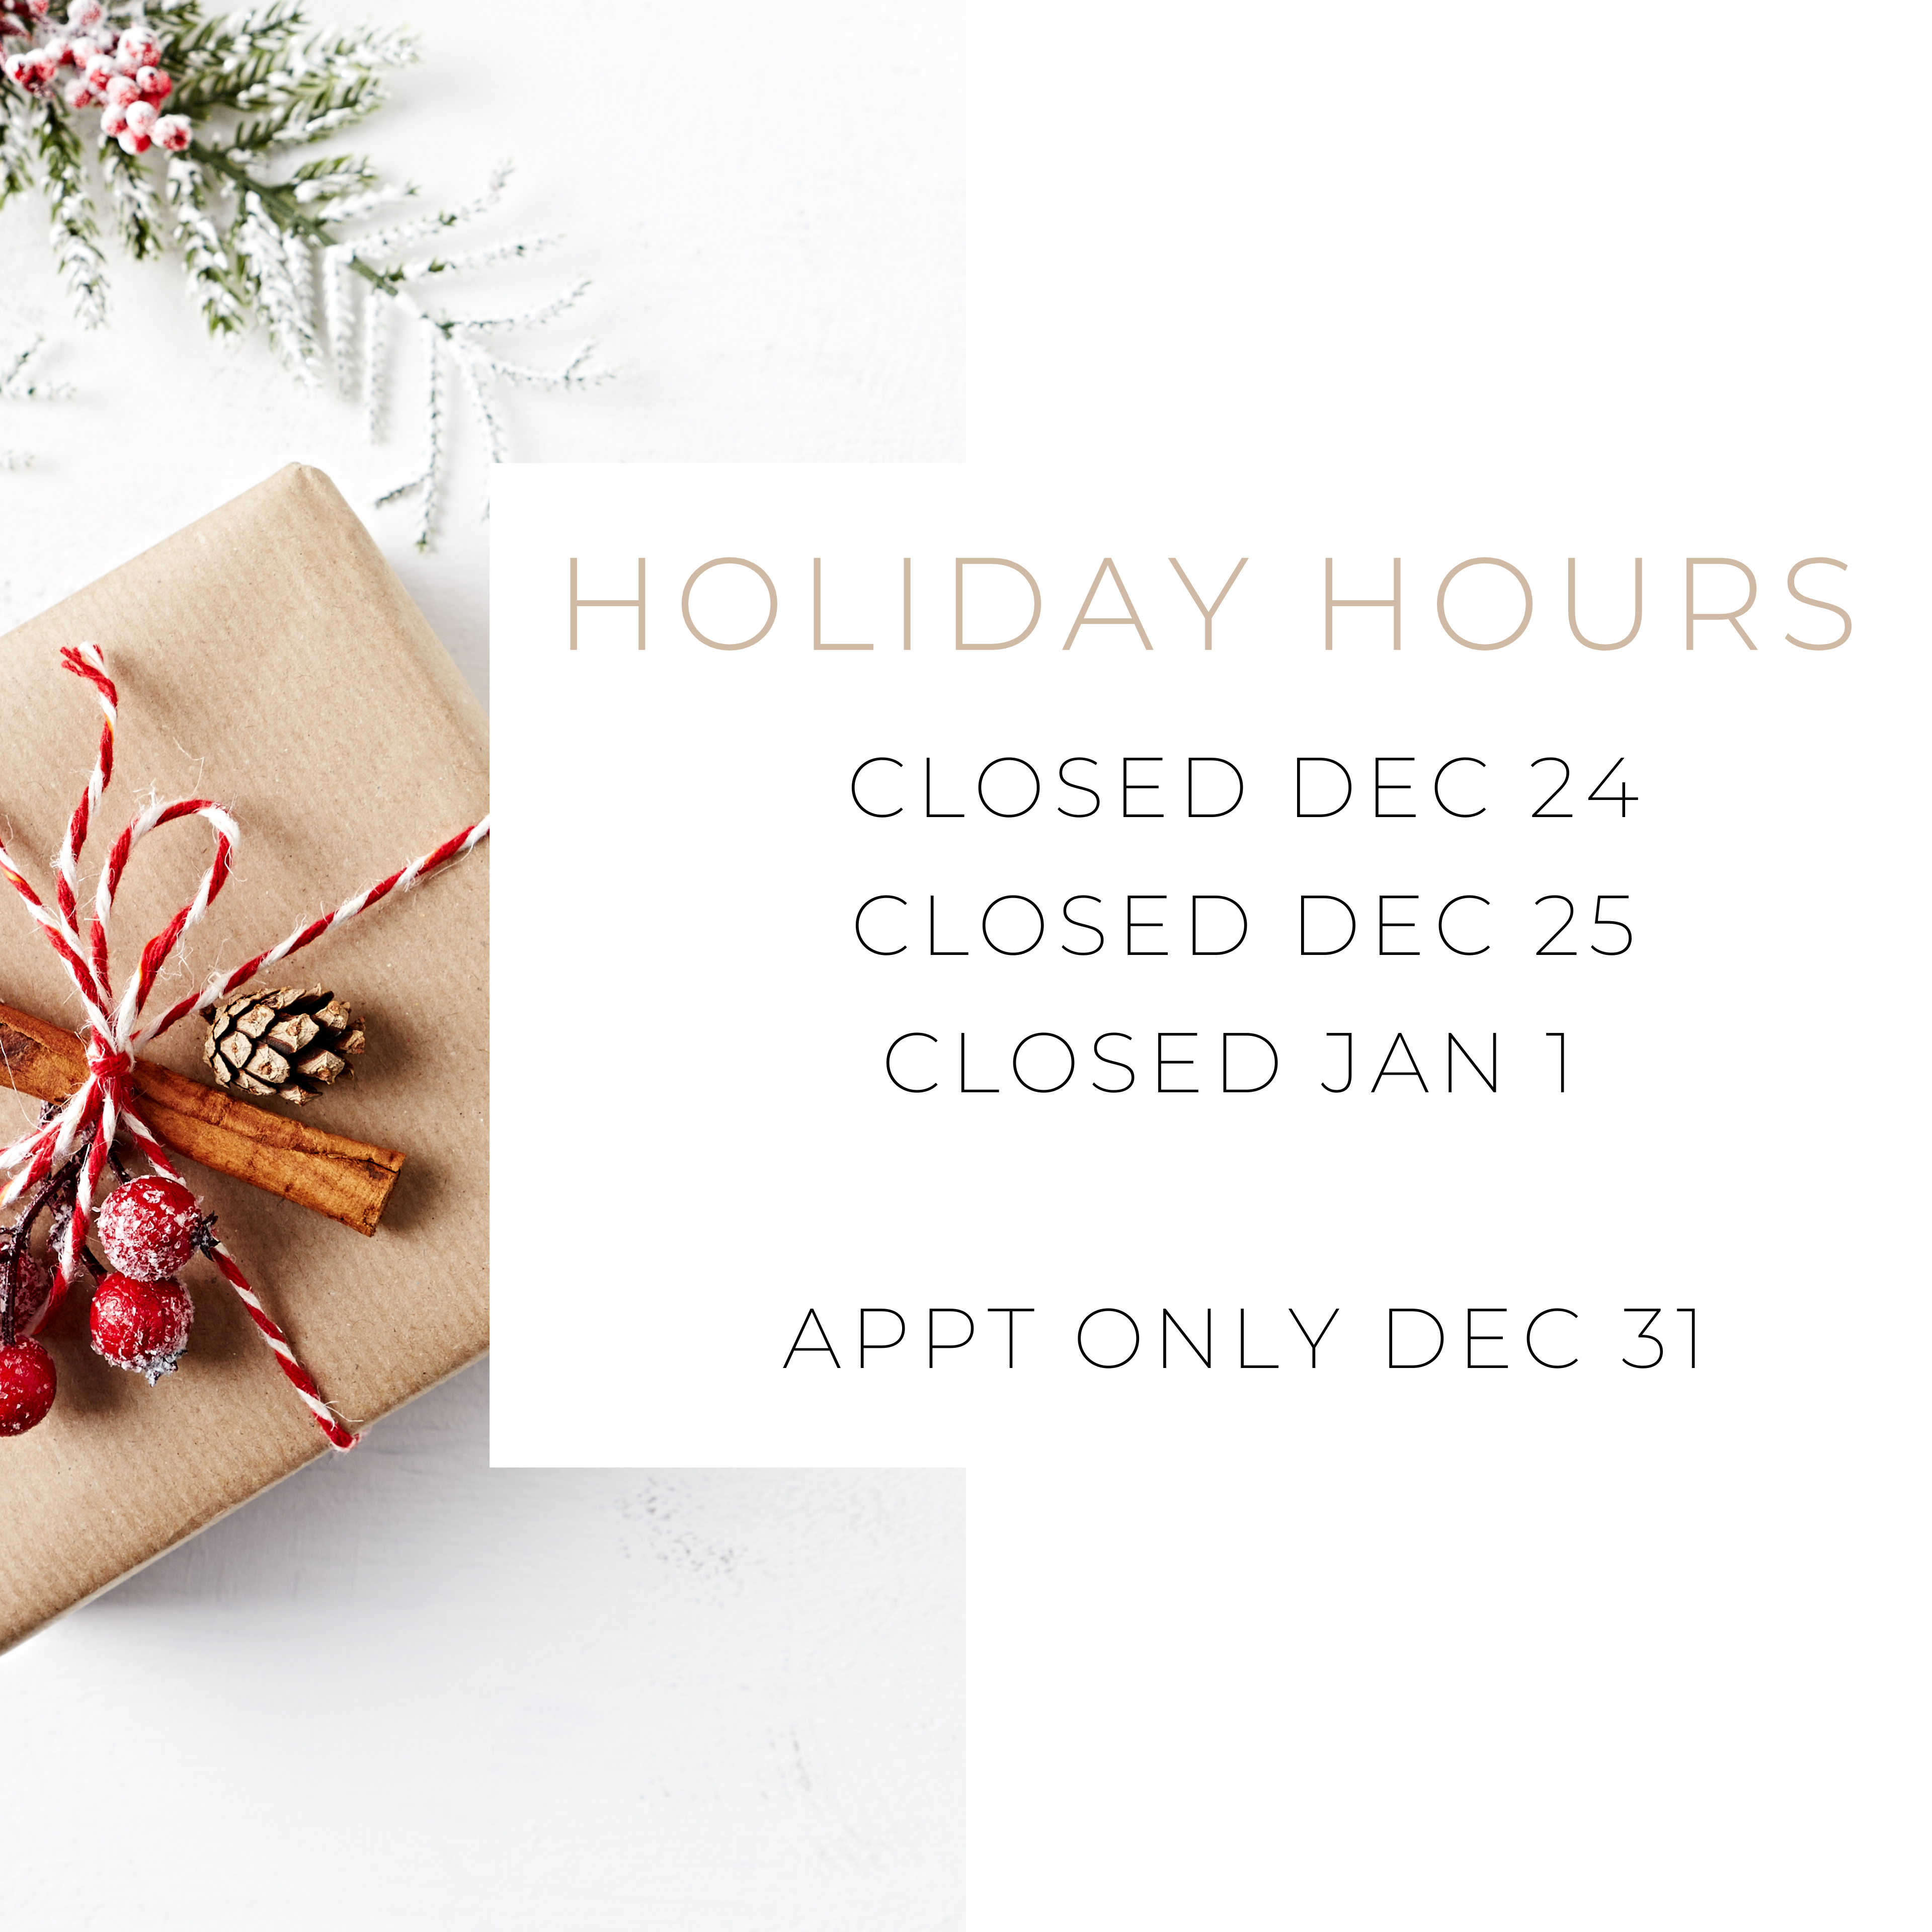 2020 Holiday Hours Image